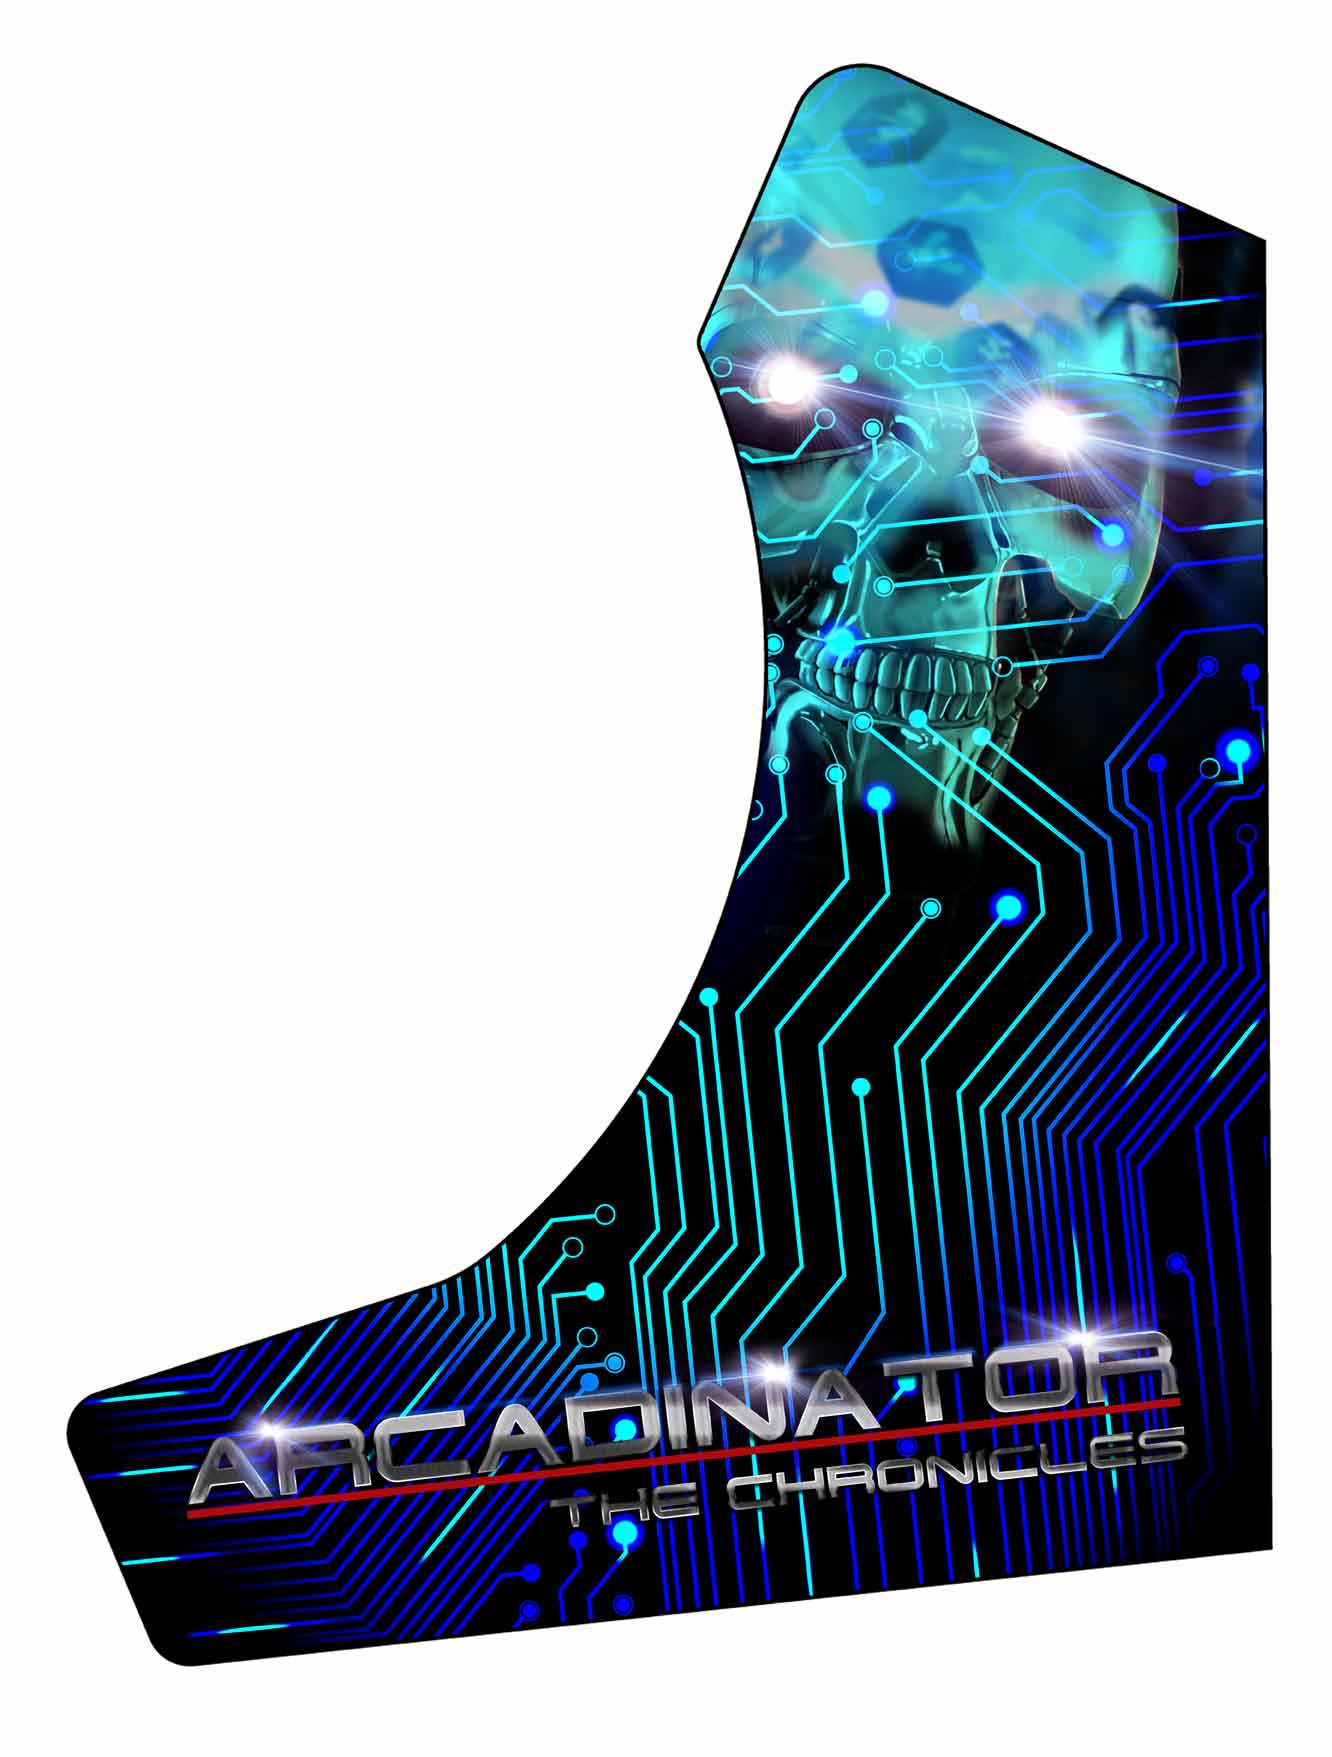 arcadinator_2player_arcade4you